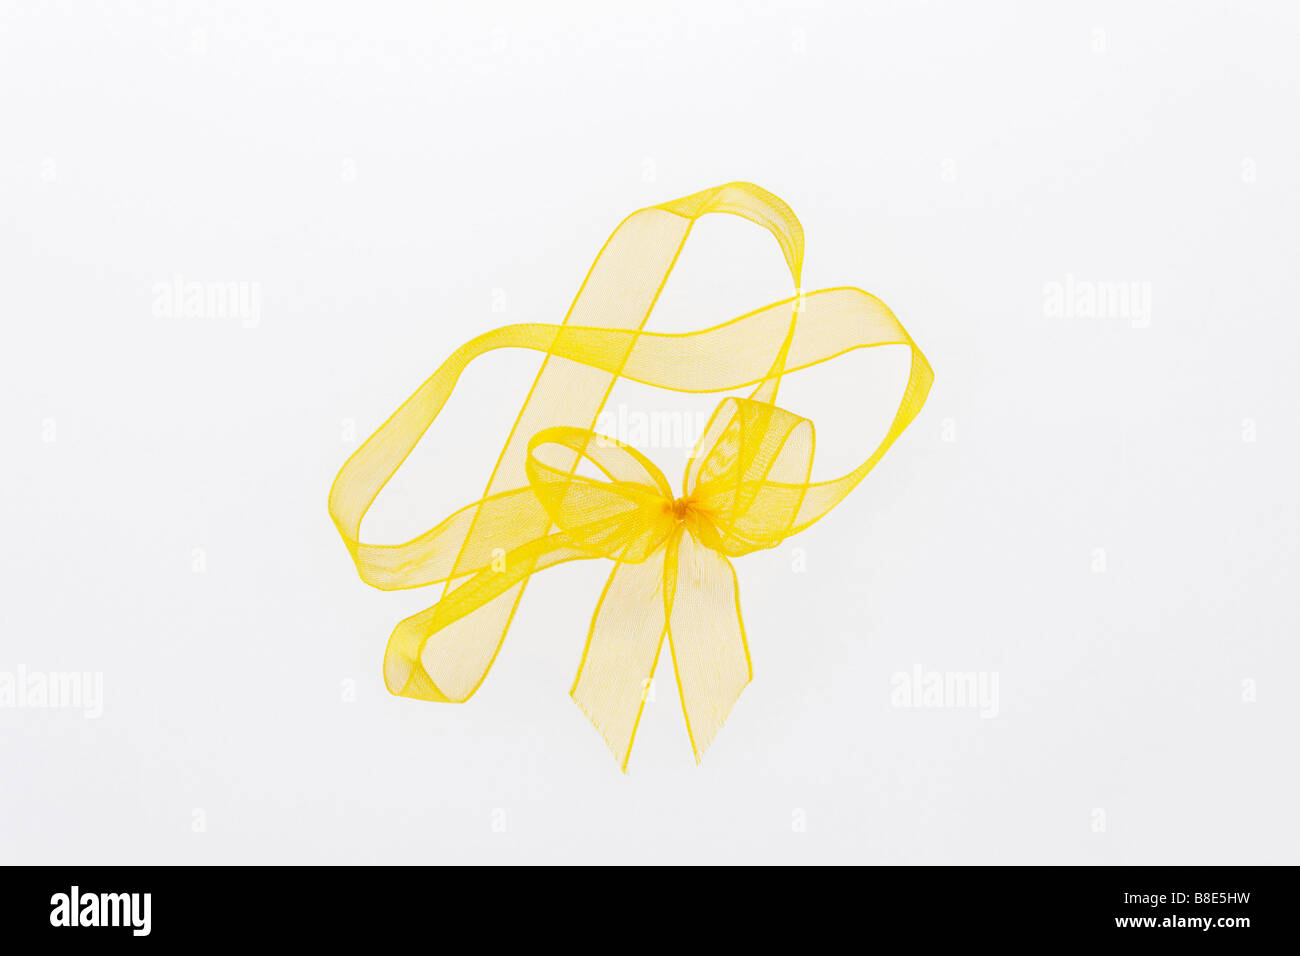 clip image yellow ribbon and bow - Stock Image